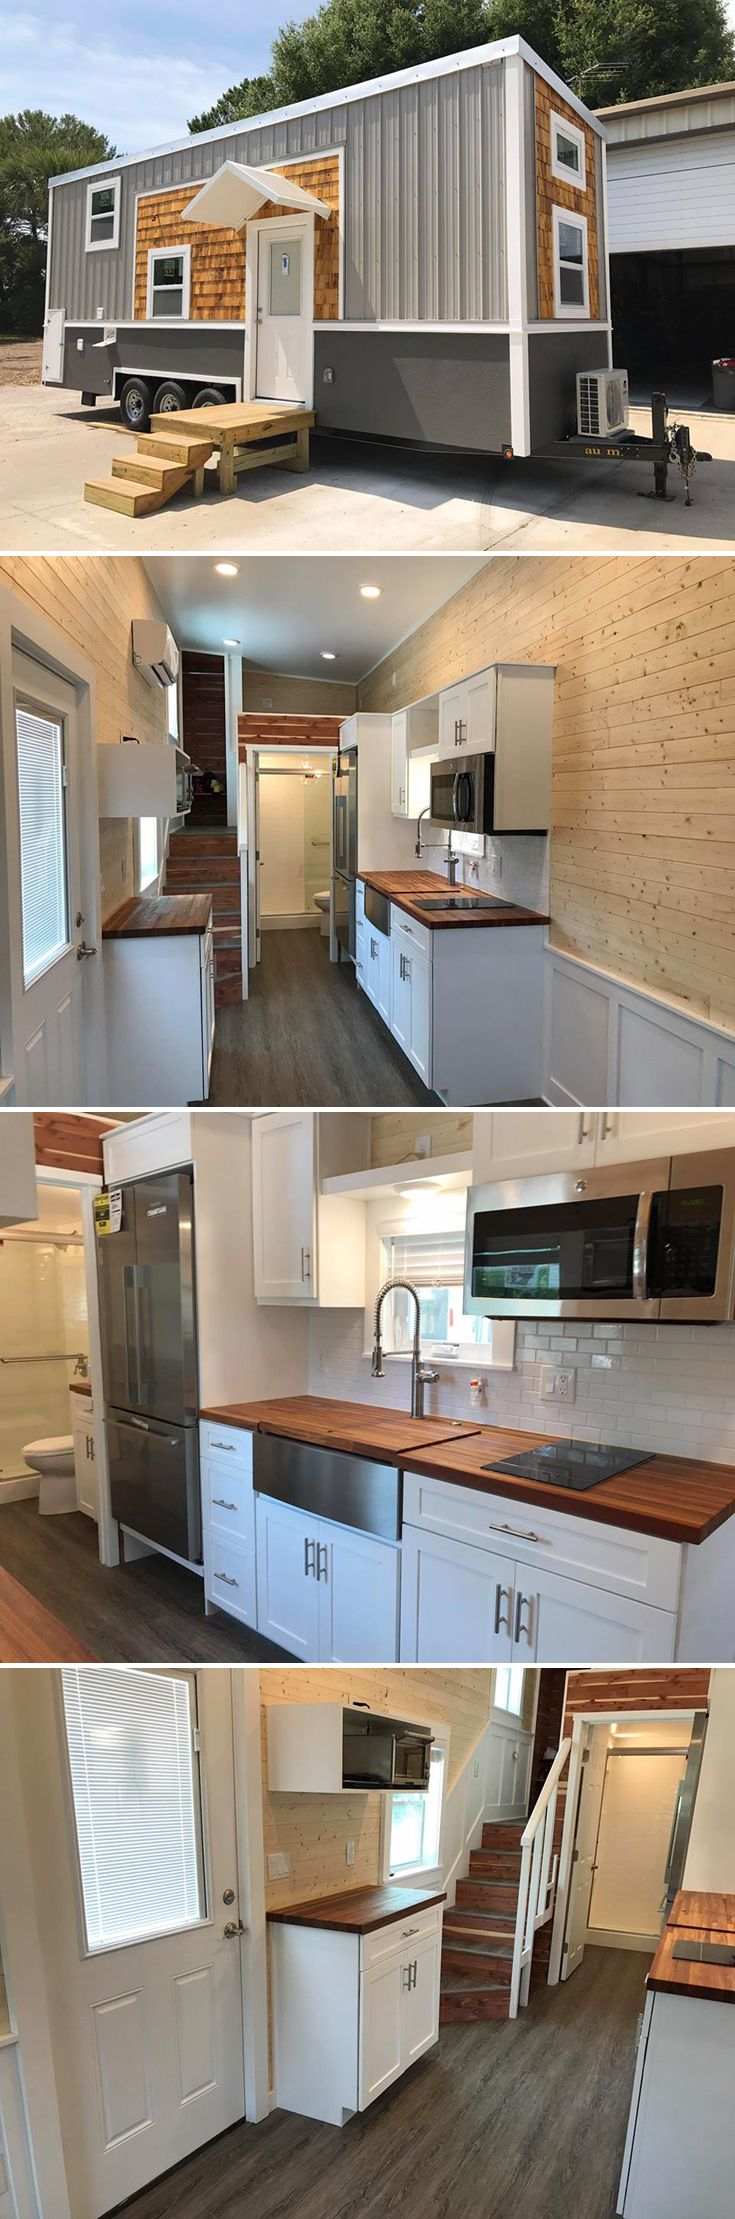 The Sportsman is the first collaborative build between Adam Lehman of A New Beginning Tiny Homes and Andrew Bennett of Trekker Trailers.